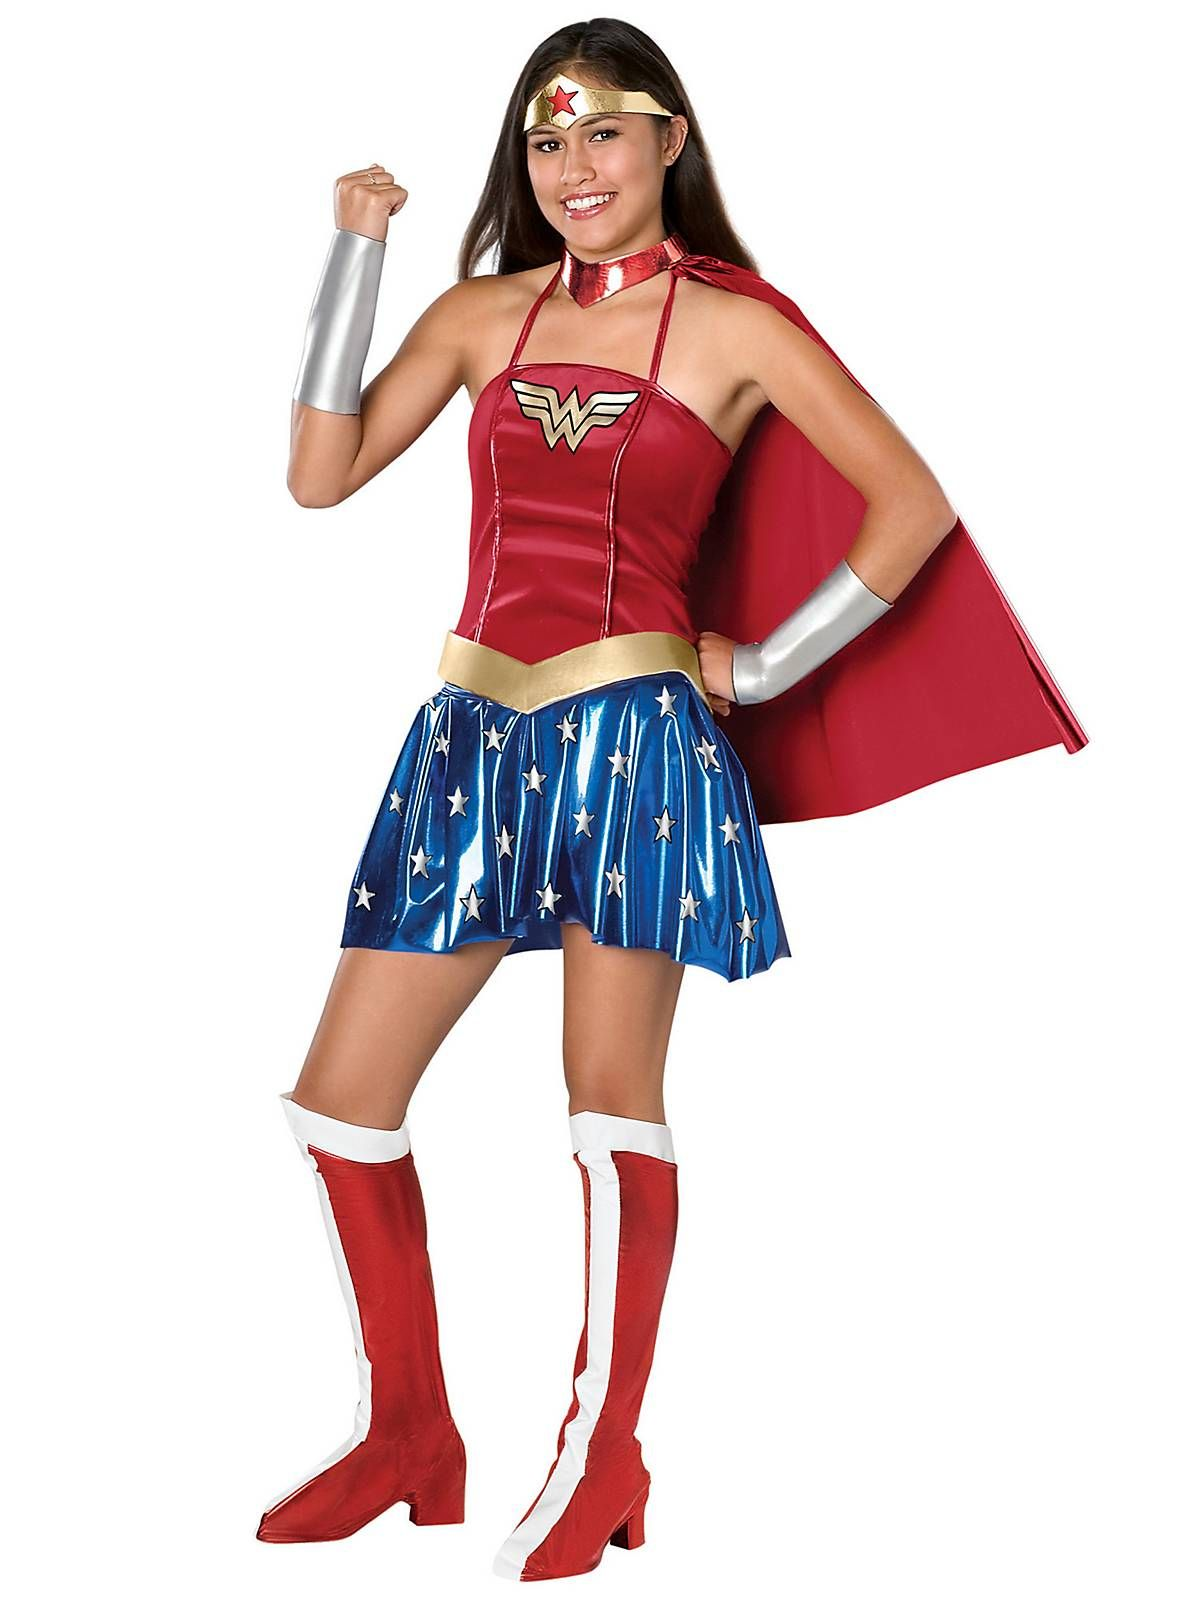 Wonder Woman Costume See More Ideas For And At Costumesupercenter